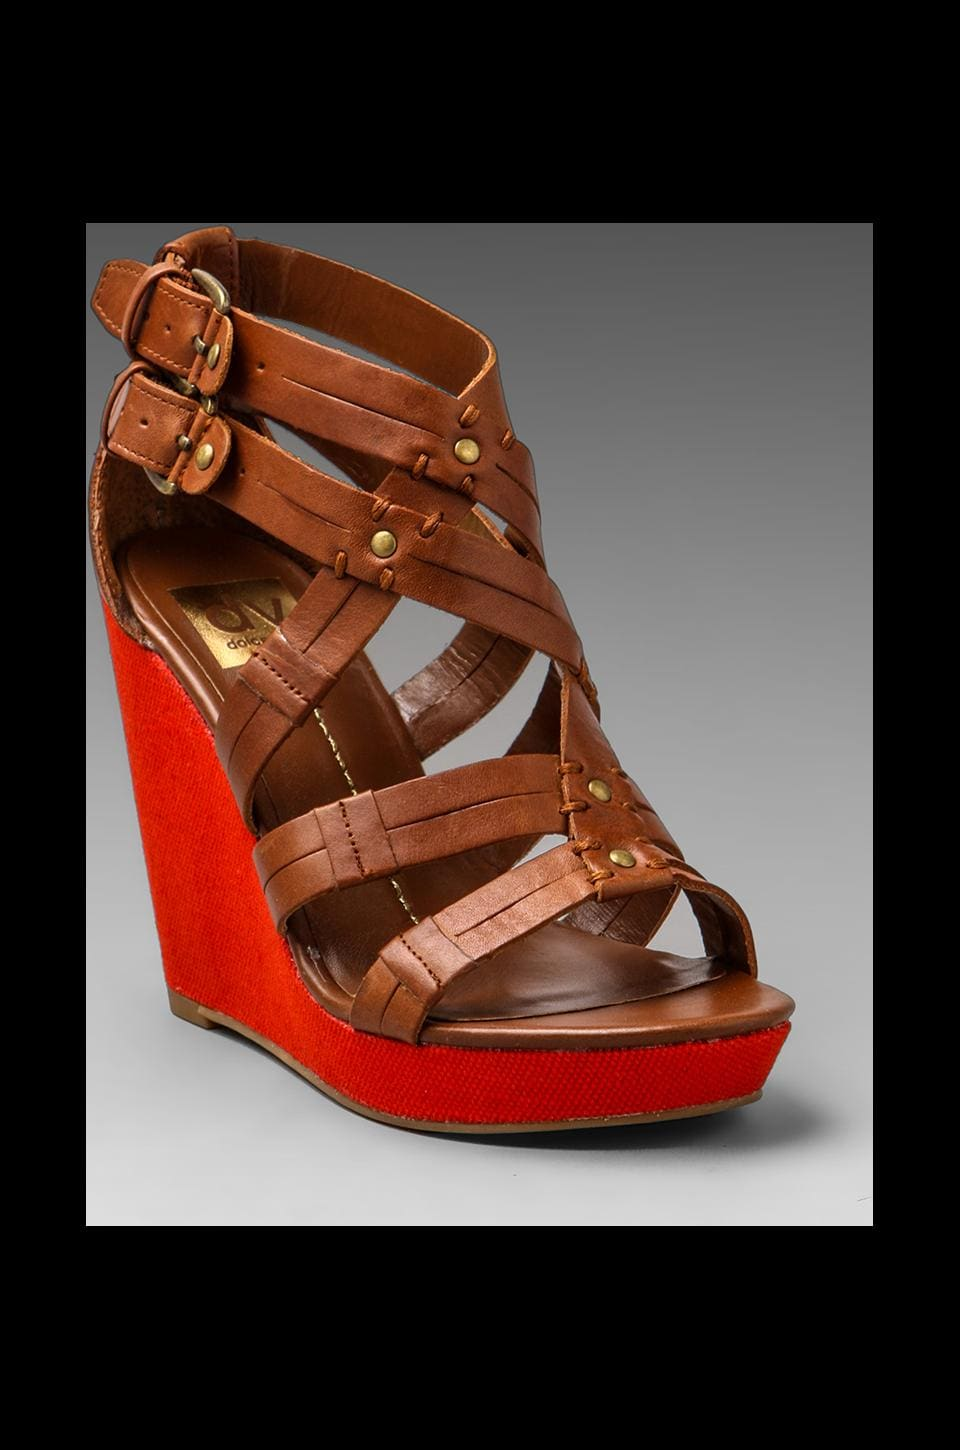 Dolce Vita Telsa Wedge Sandal in Cognac